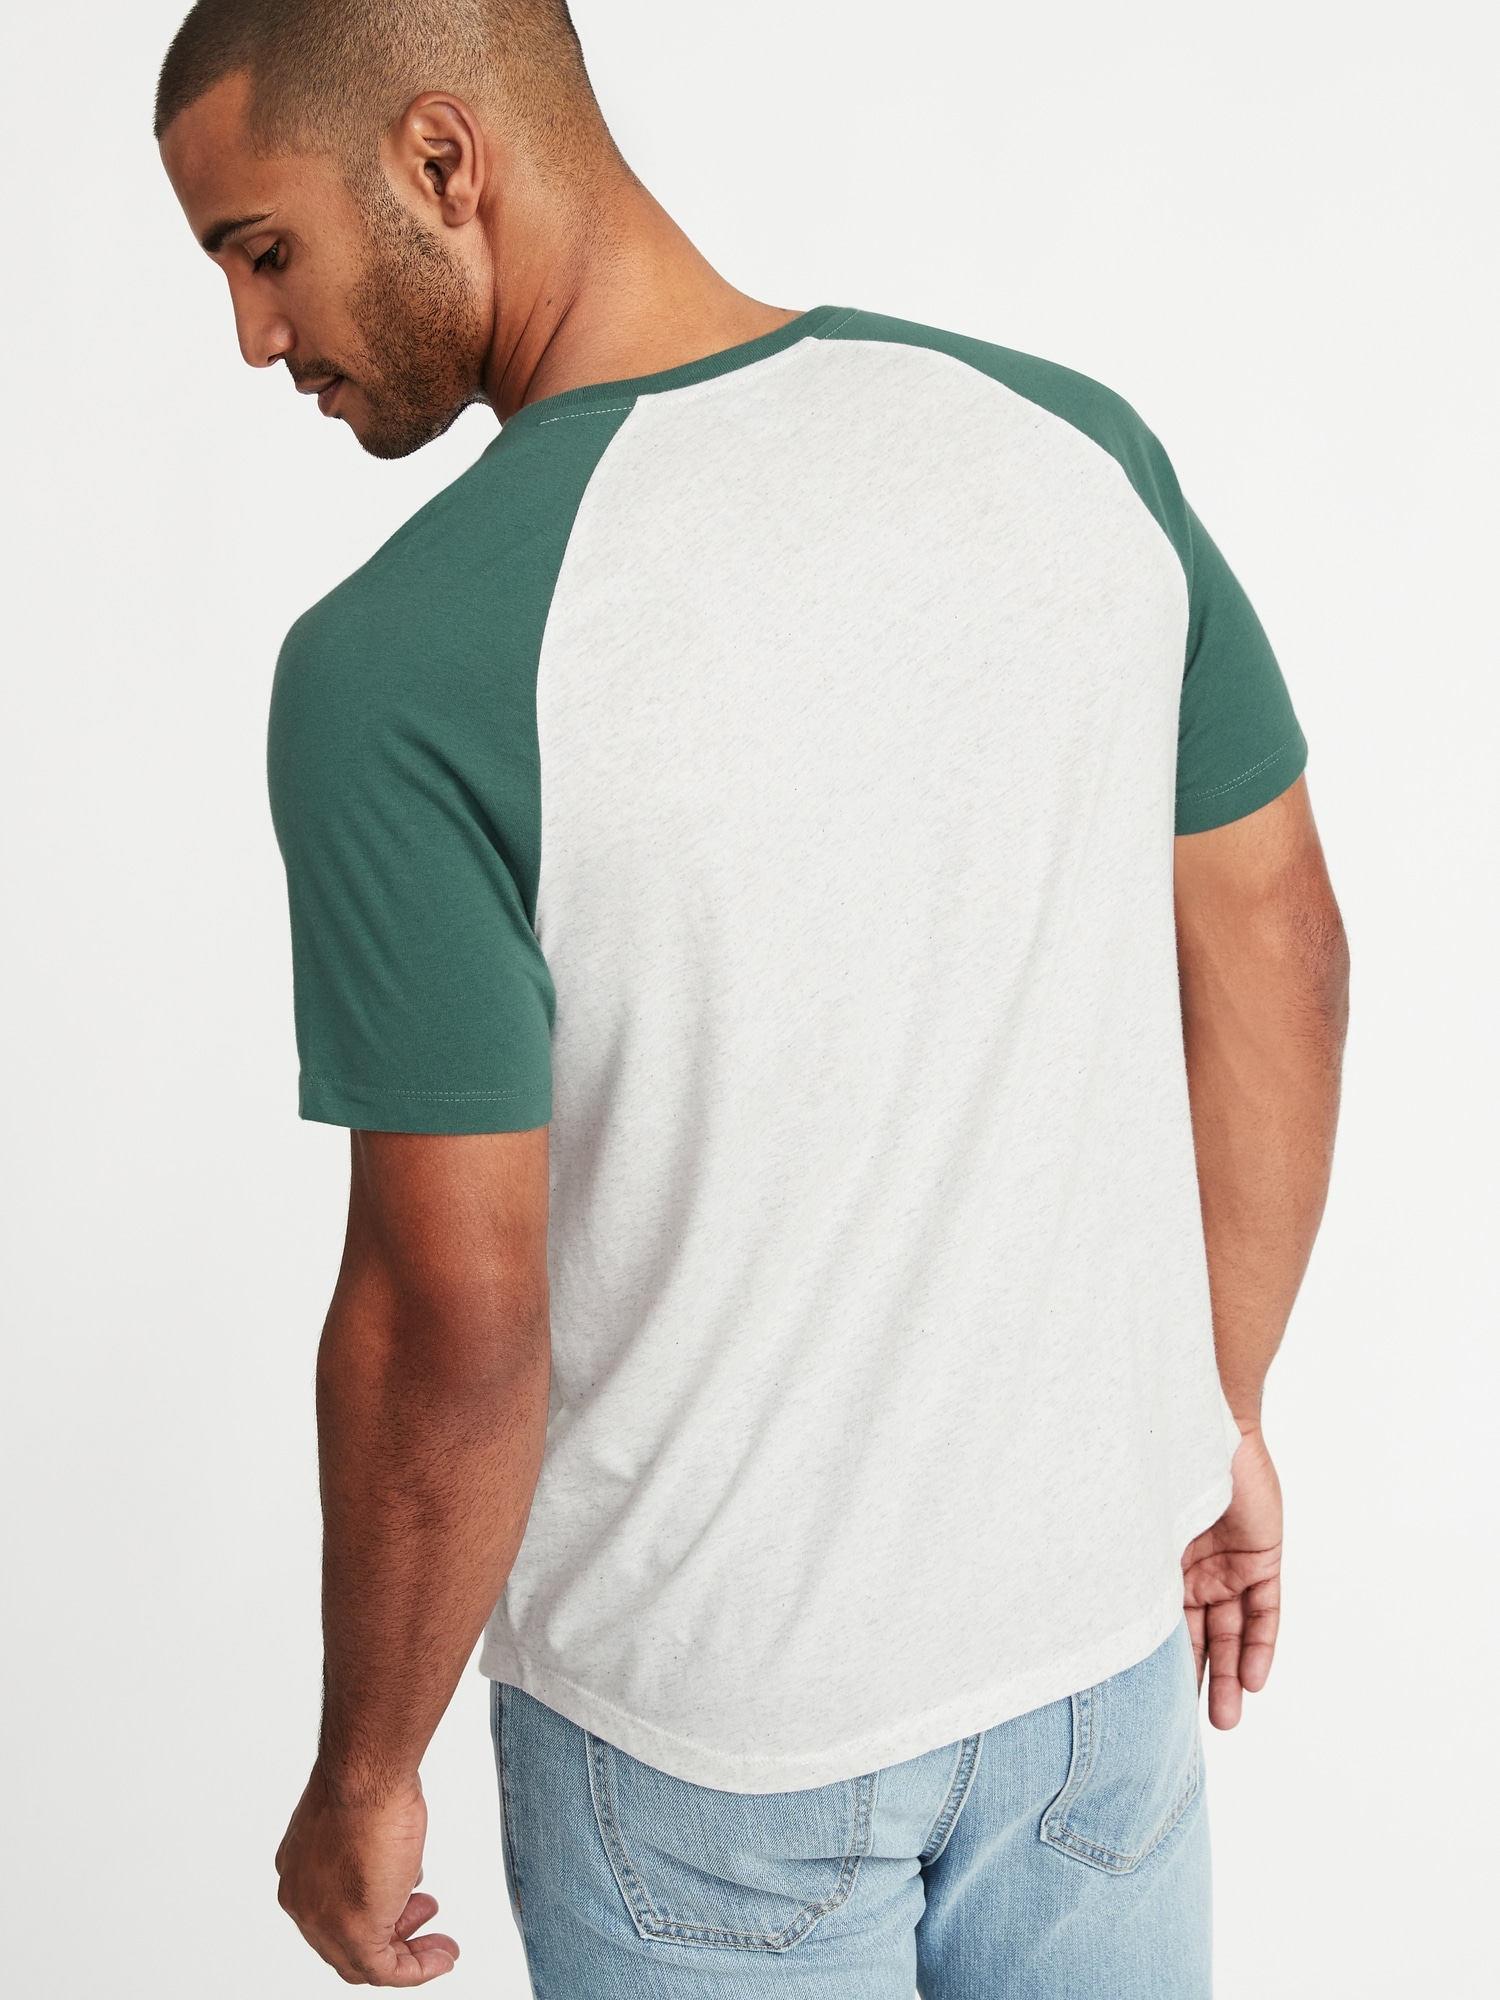 53e533a310b Soft-Washed Color-Block Raglan Tee for Men ...